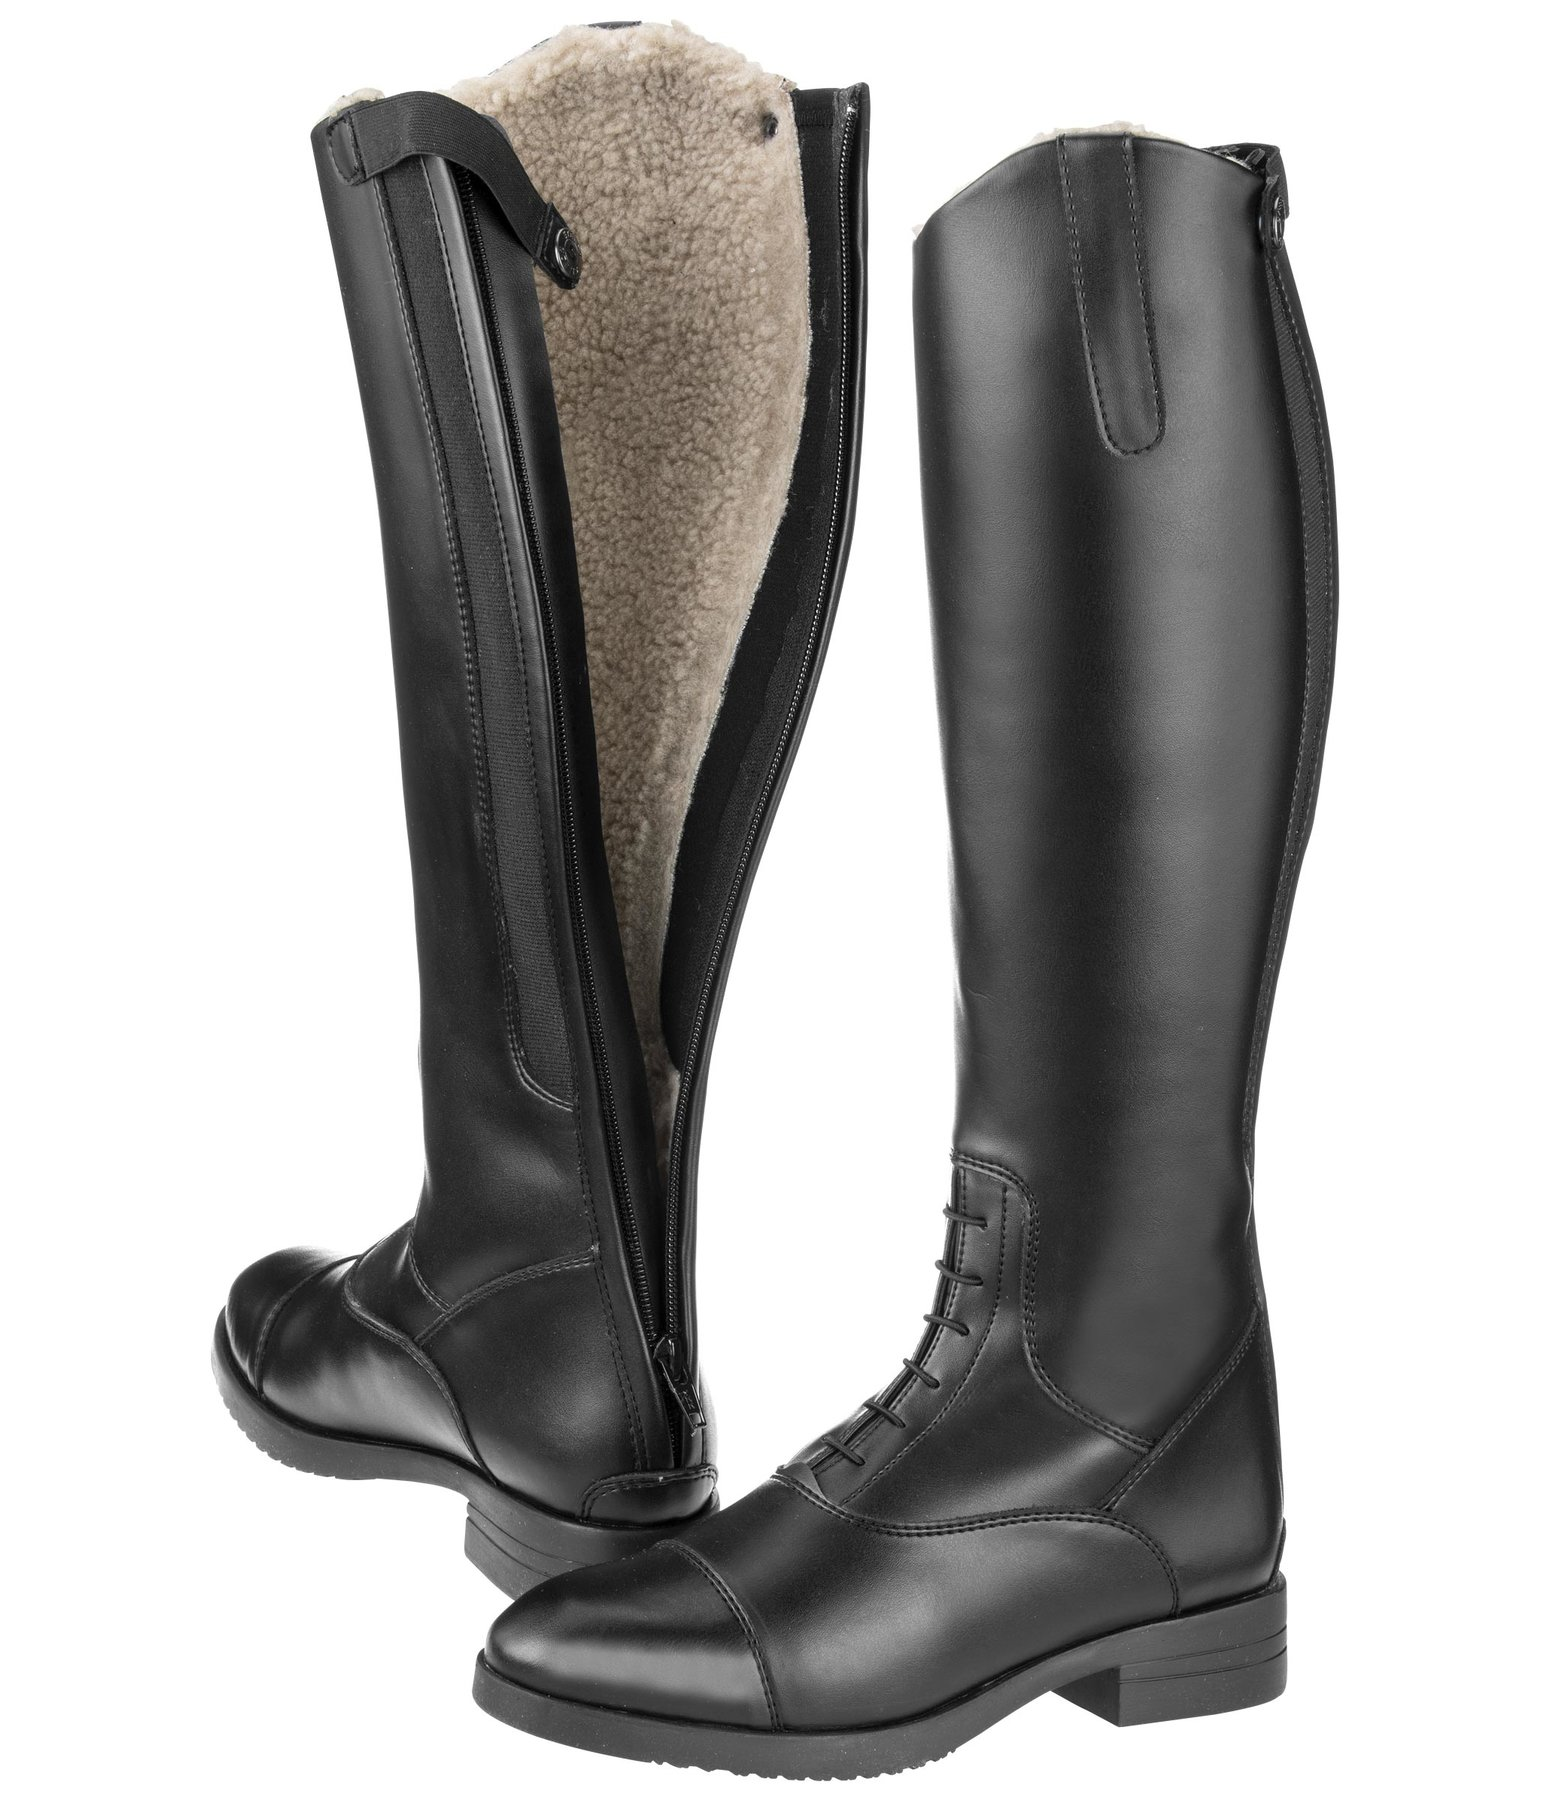 SYLKA Winter Riding Boots Tender II